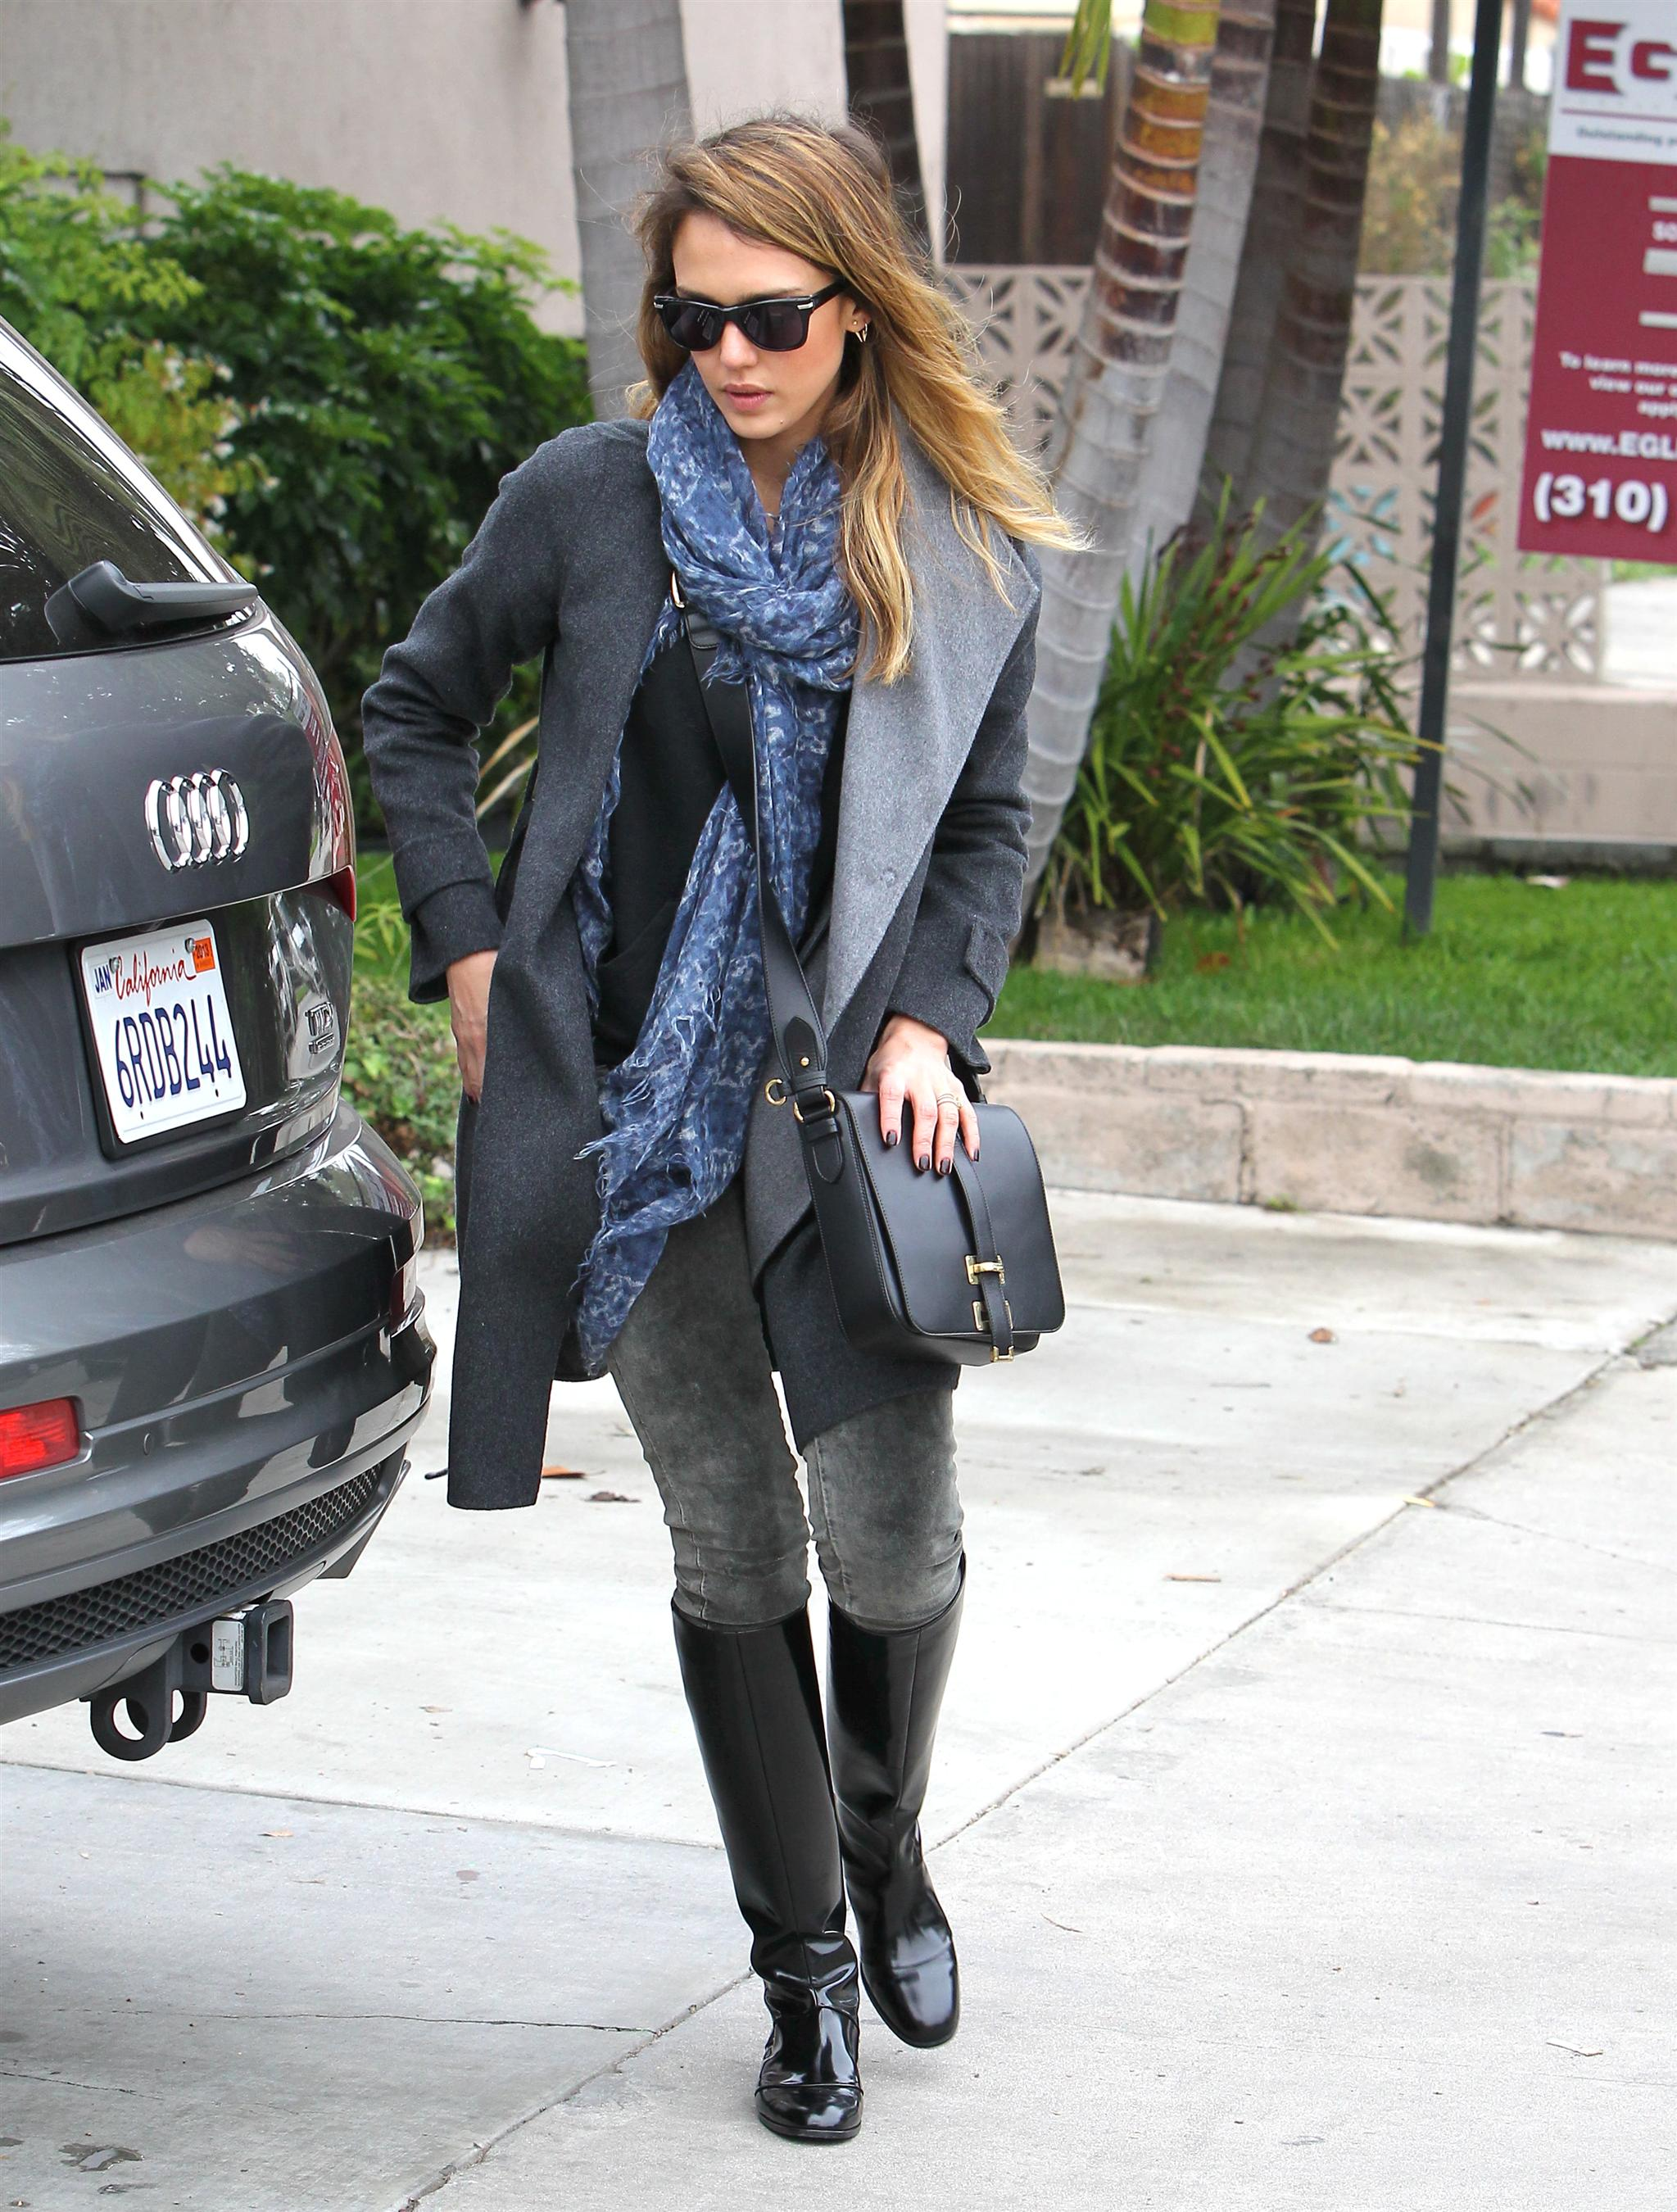 2012-12-08 - at brunch in Los Angeles